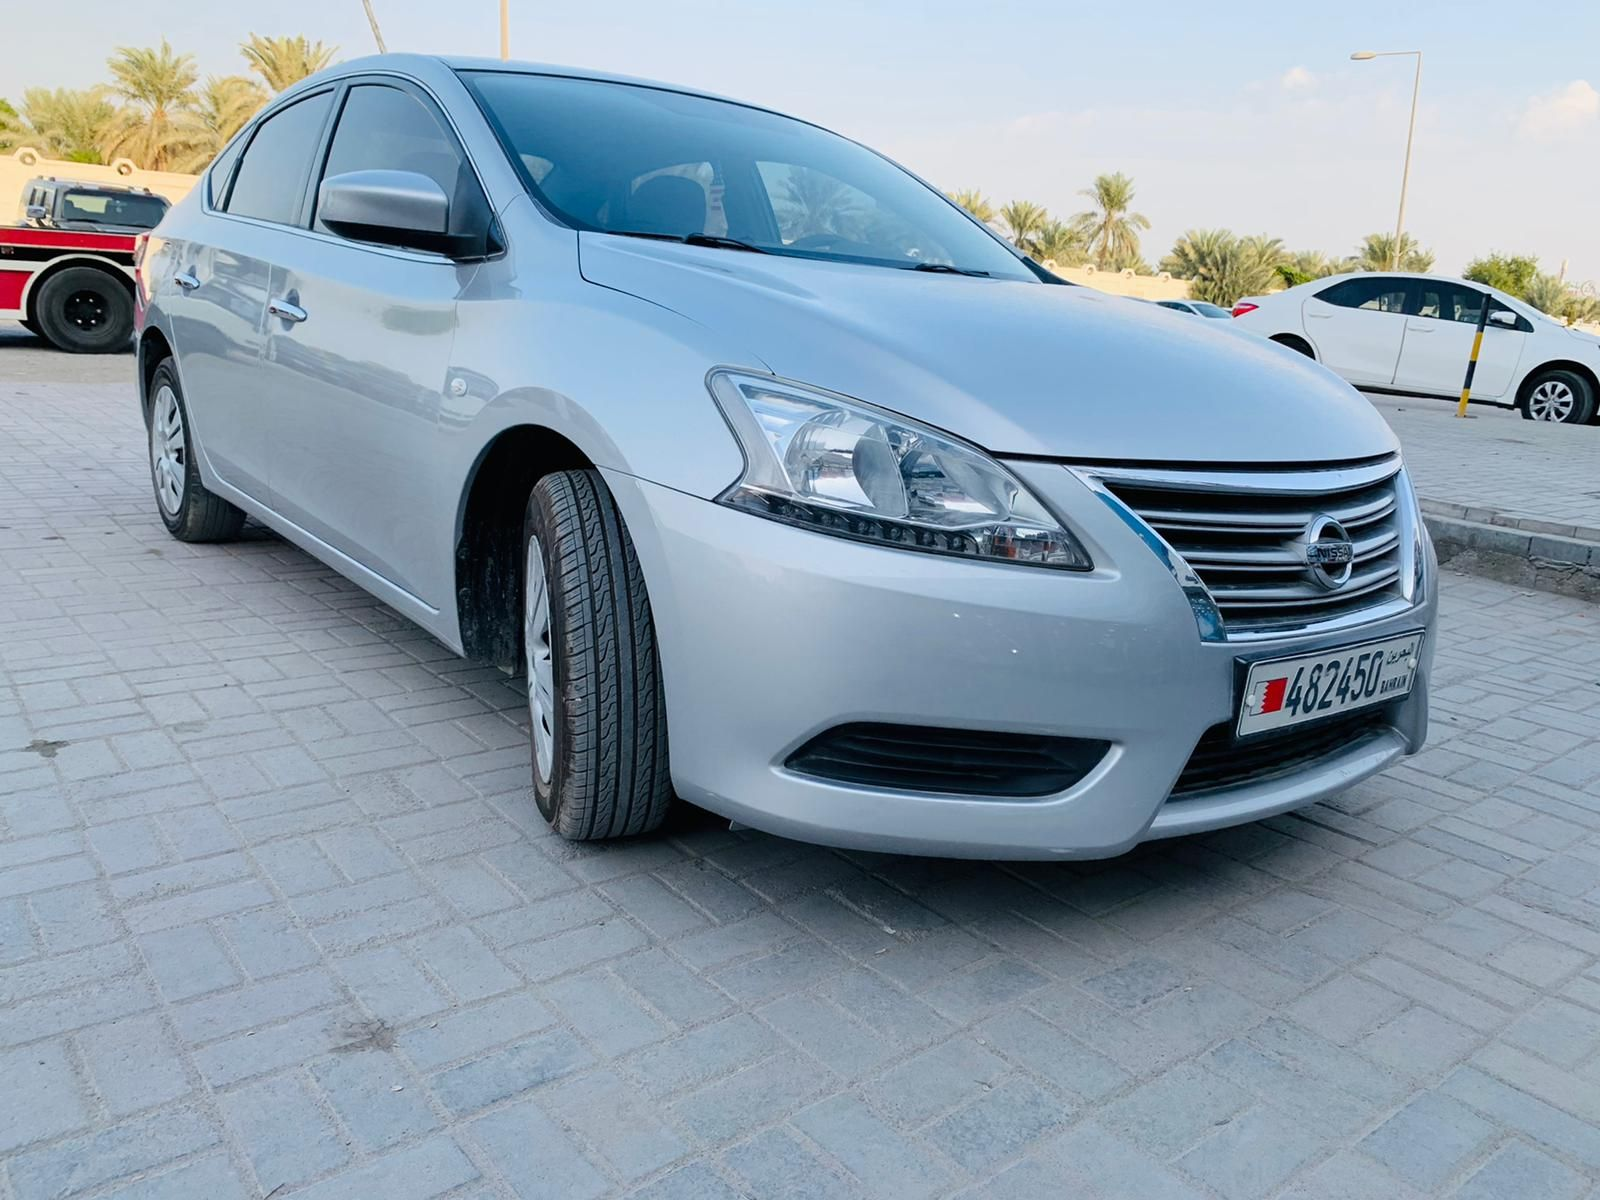 NISSAN SENTRA MODEL 2014 GOOD CONDITION